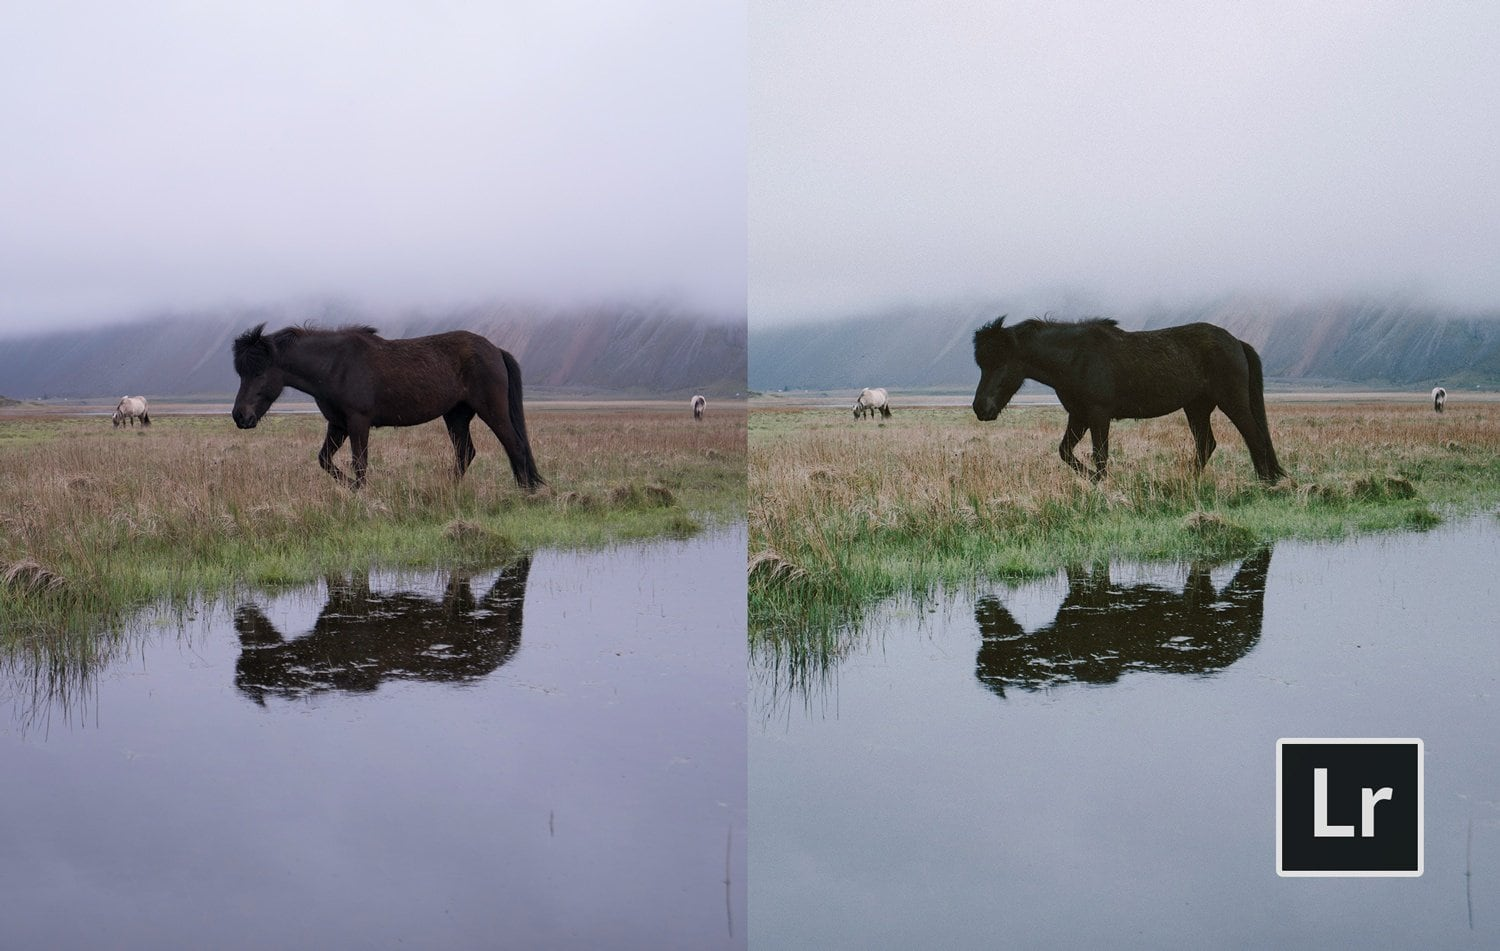 Free-Lightroom-Preset-Fogged-Film-Before-and-After-Presetpro.com